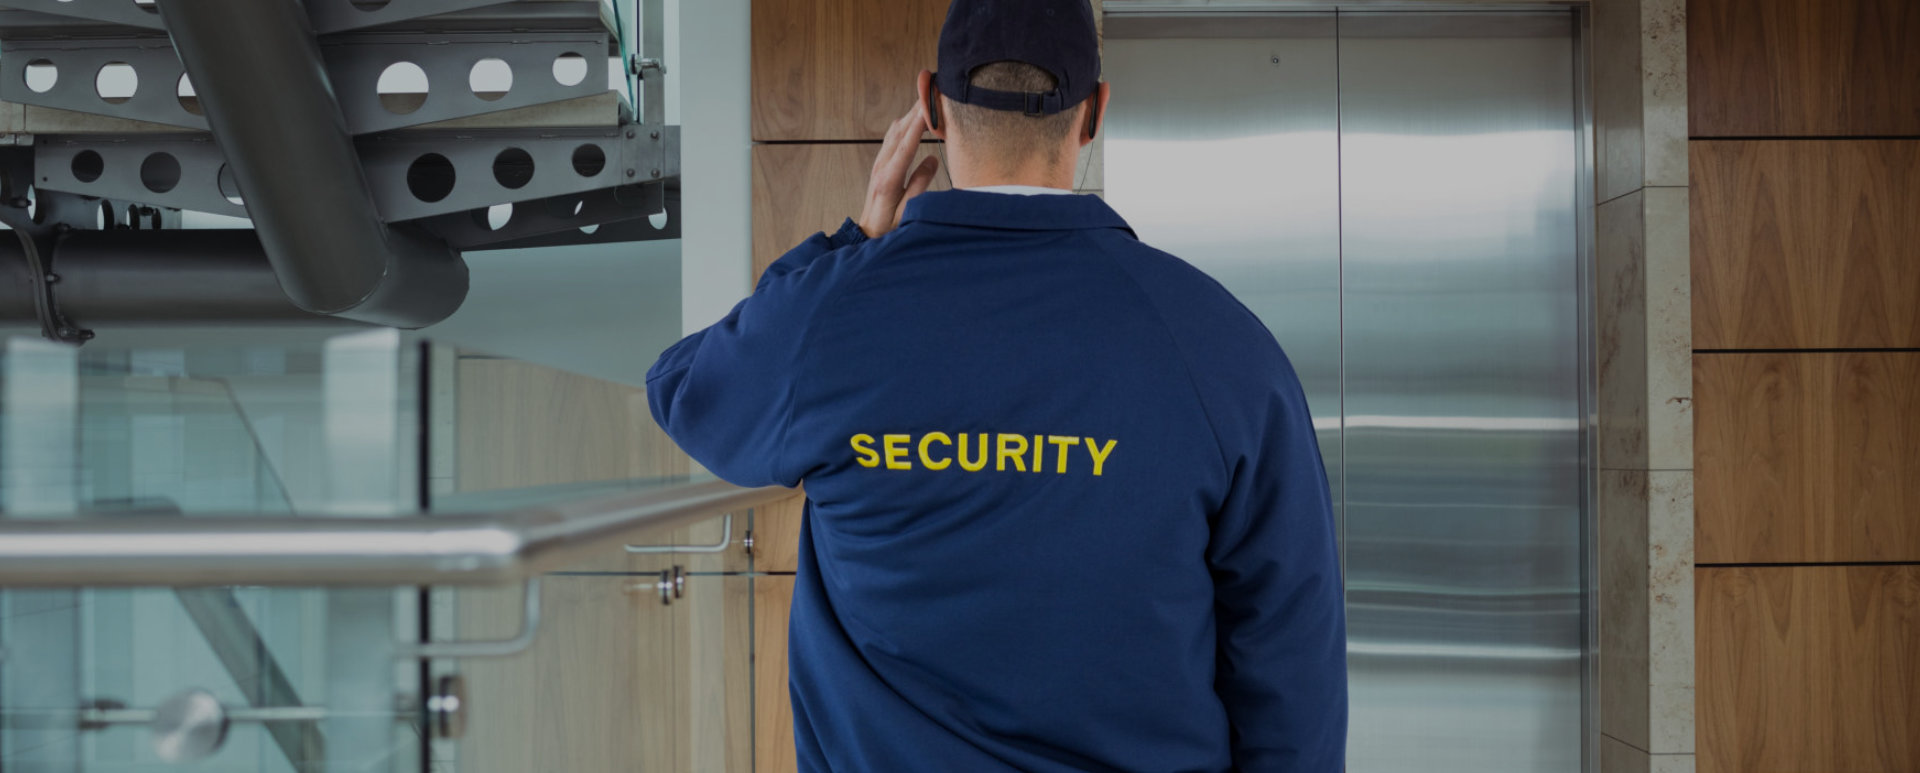 security personnel in front of an elevator